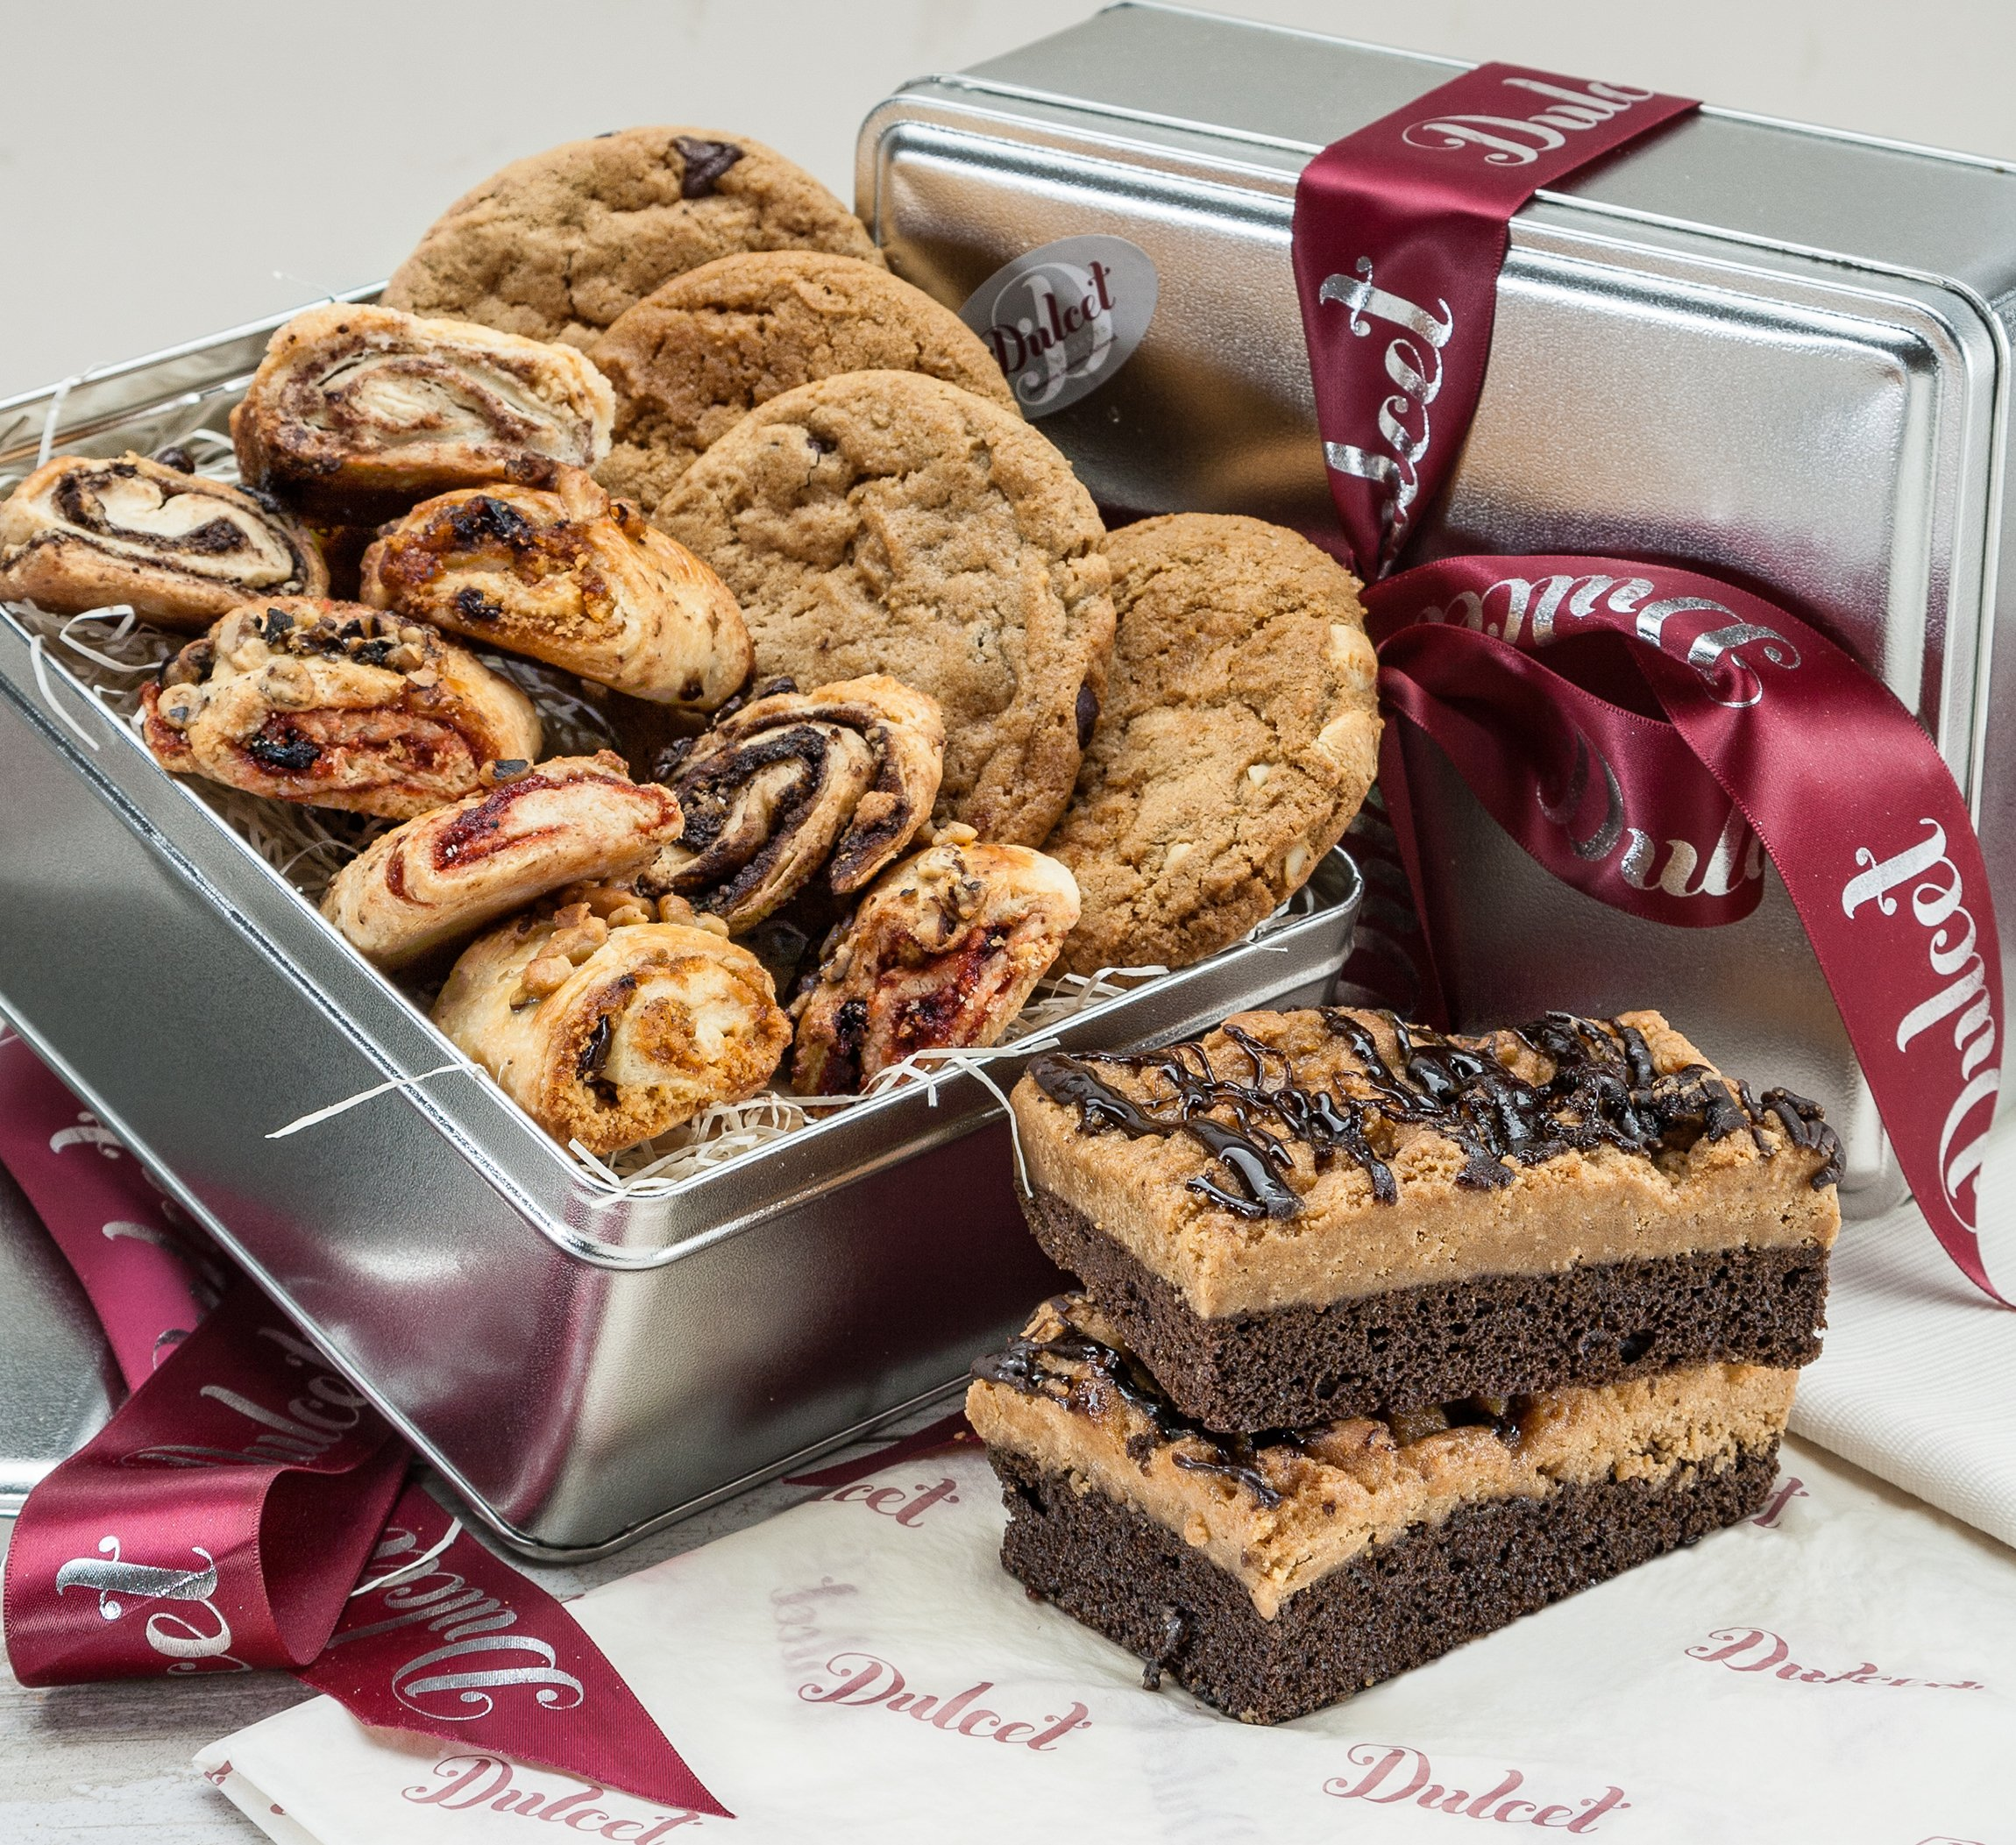 Old Fashioned Gourmet Bakery Gift Holiday: Chocolate Chip Cookie, Cranberry Cookie, Peanut Butter Cookie, Oatmeal Raisin Cookies, Rugelach, Chocolate Crumb cake. Great Gift Basket!